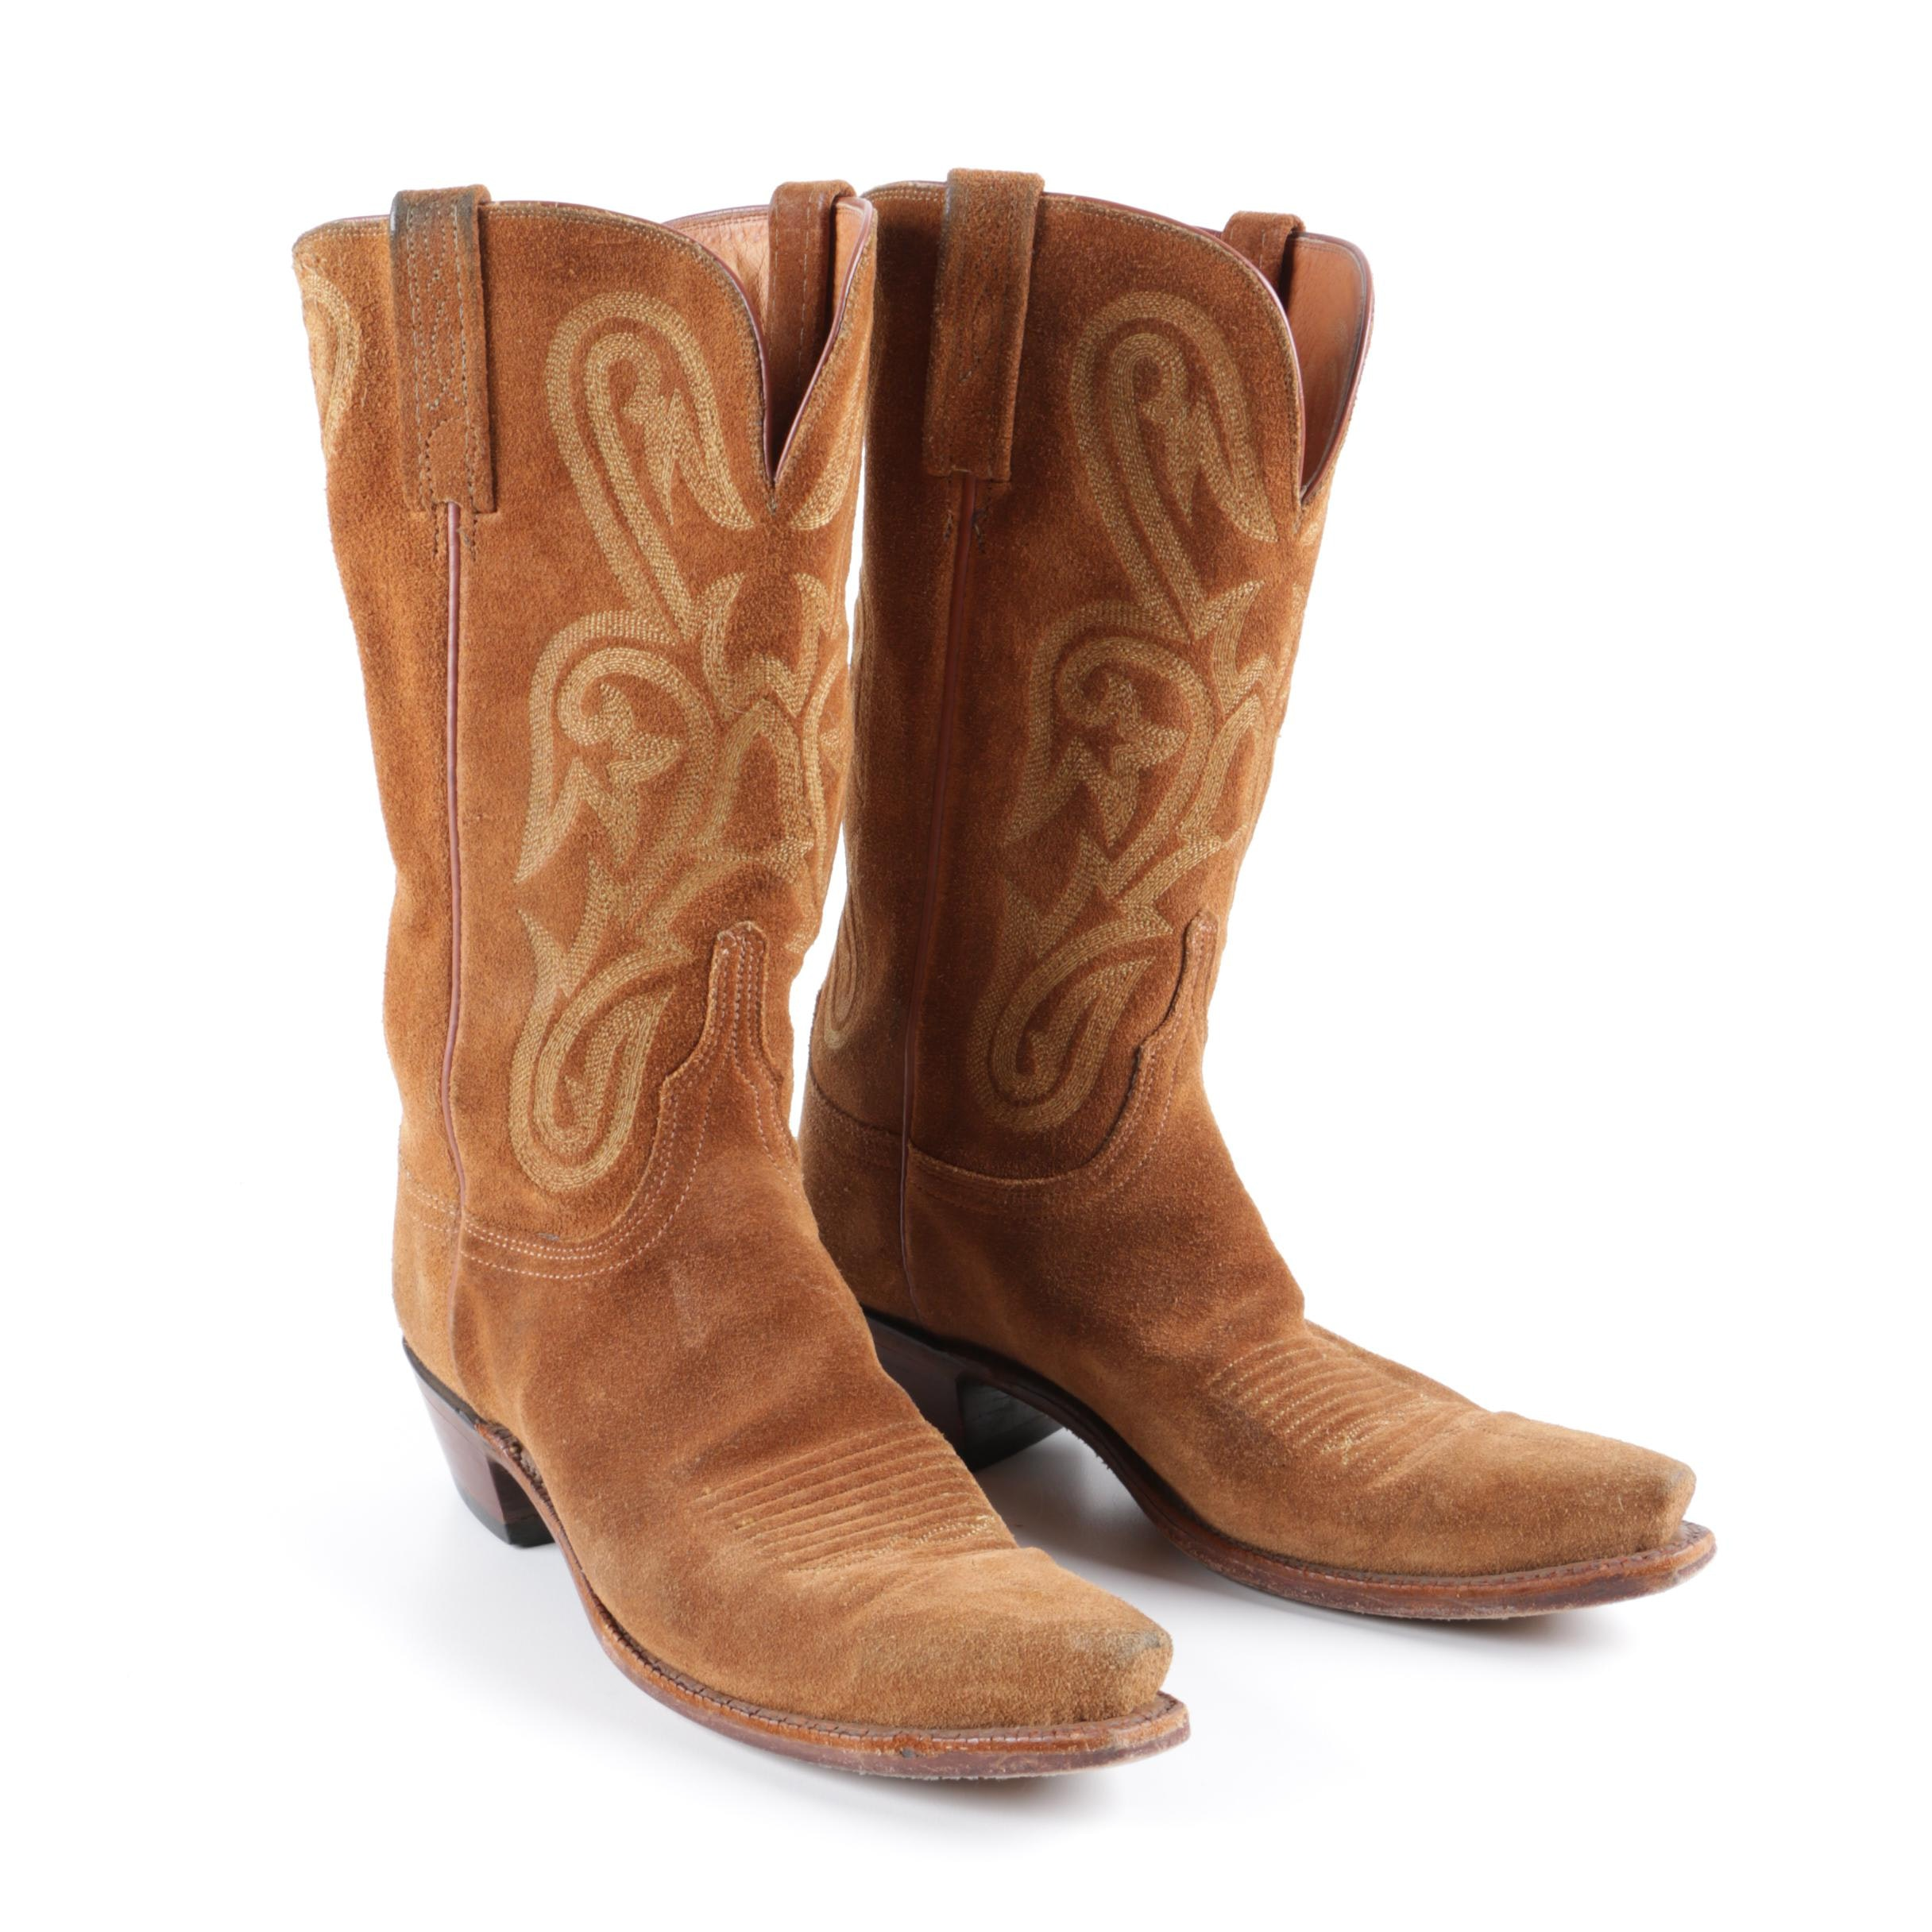 Men's 1883 Lucchese Brown Suede Cowboy Boots